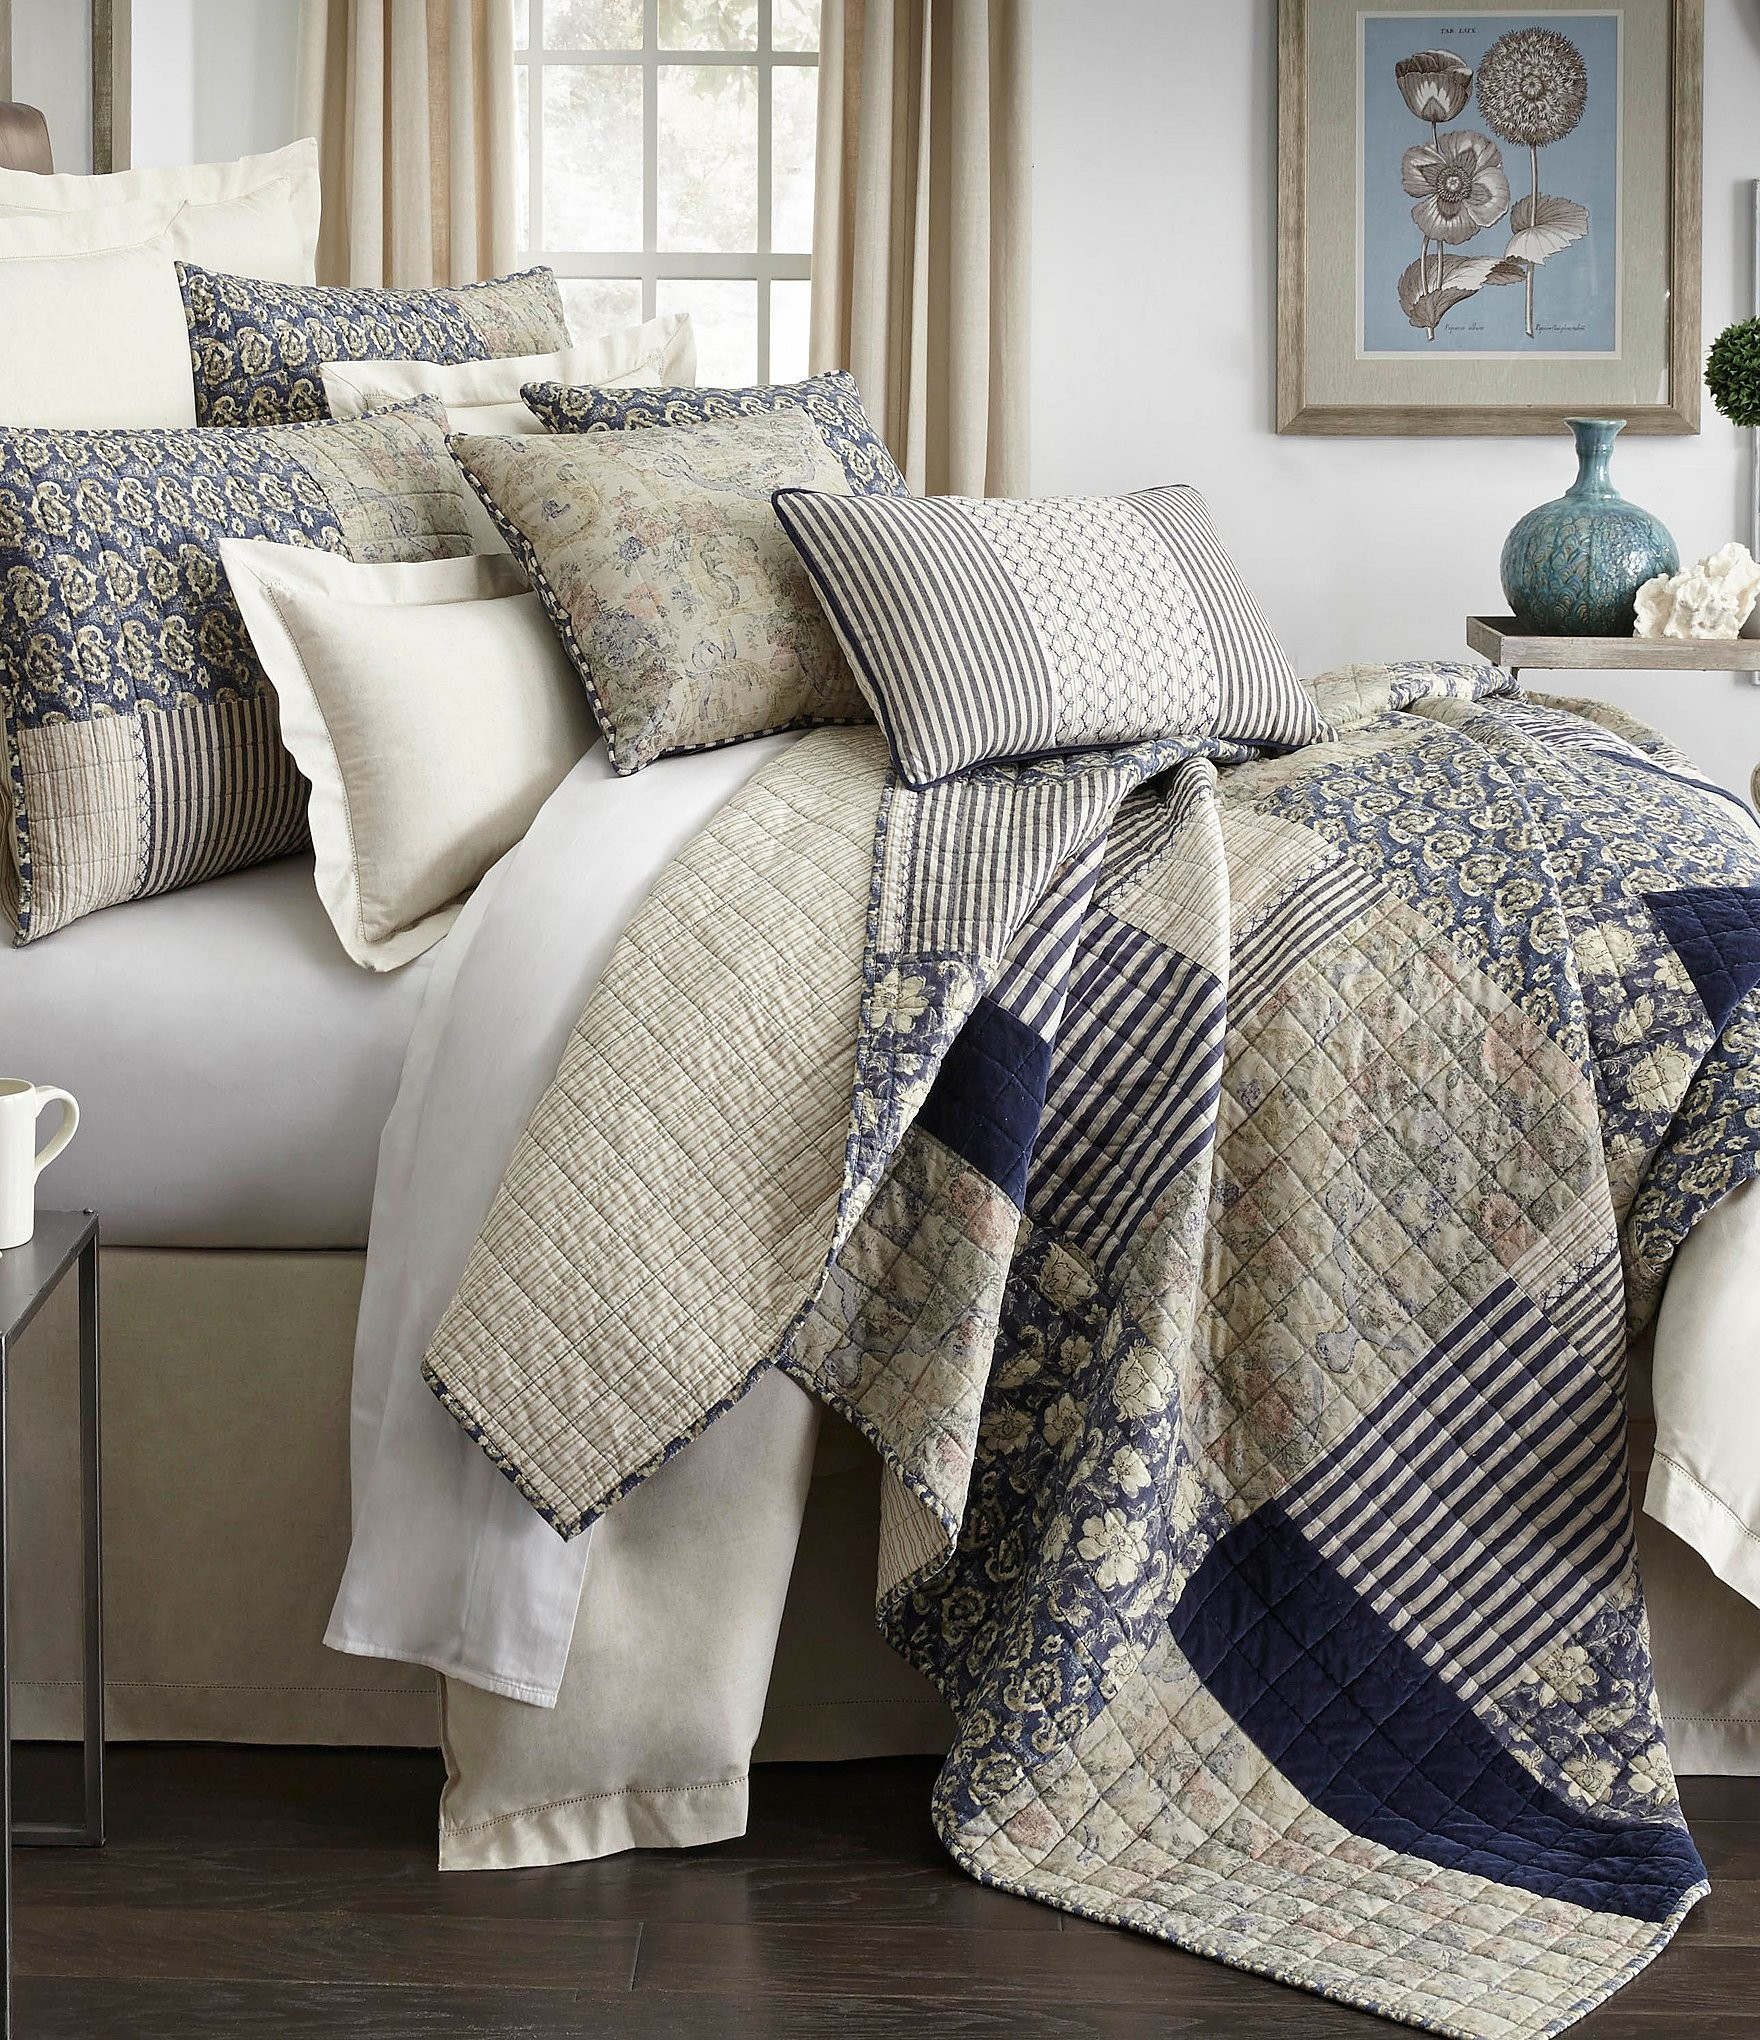 Dillards Bedding Collections | Quilts & Comforters | Buyer Select : dillards quilts - Adamdwight.com